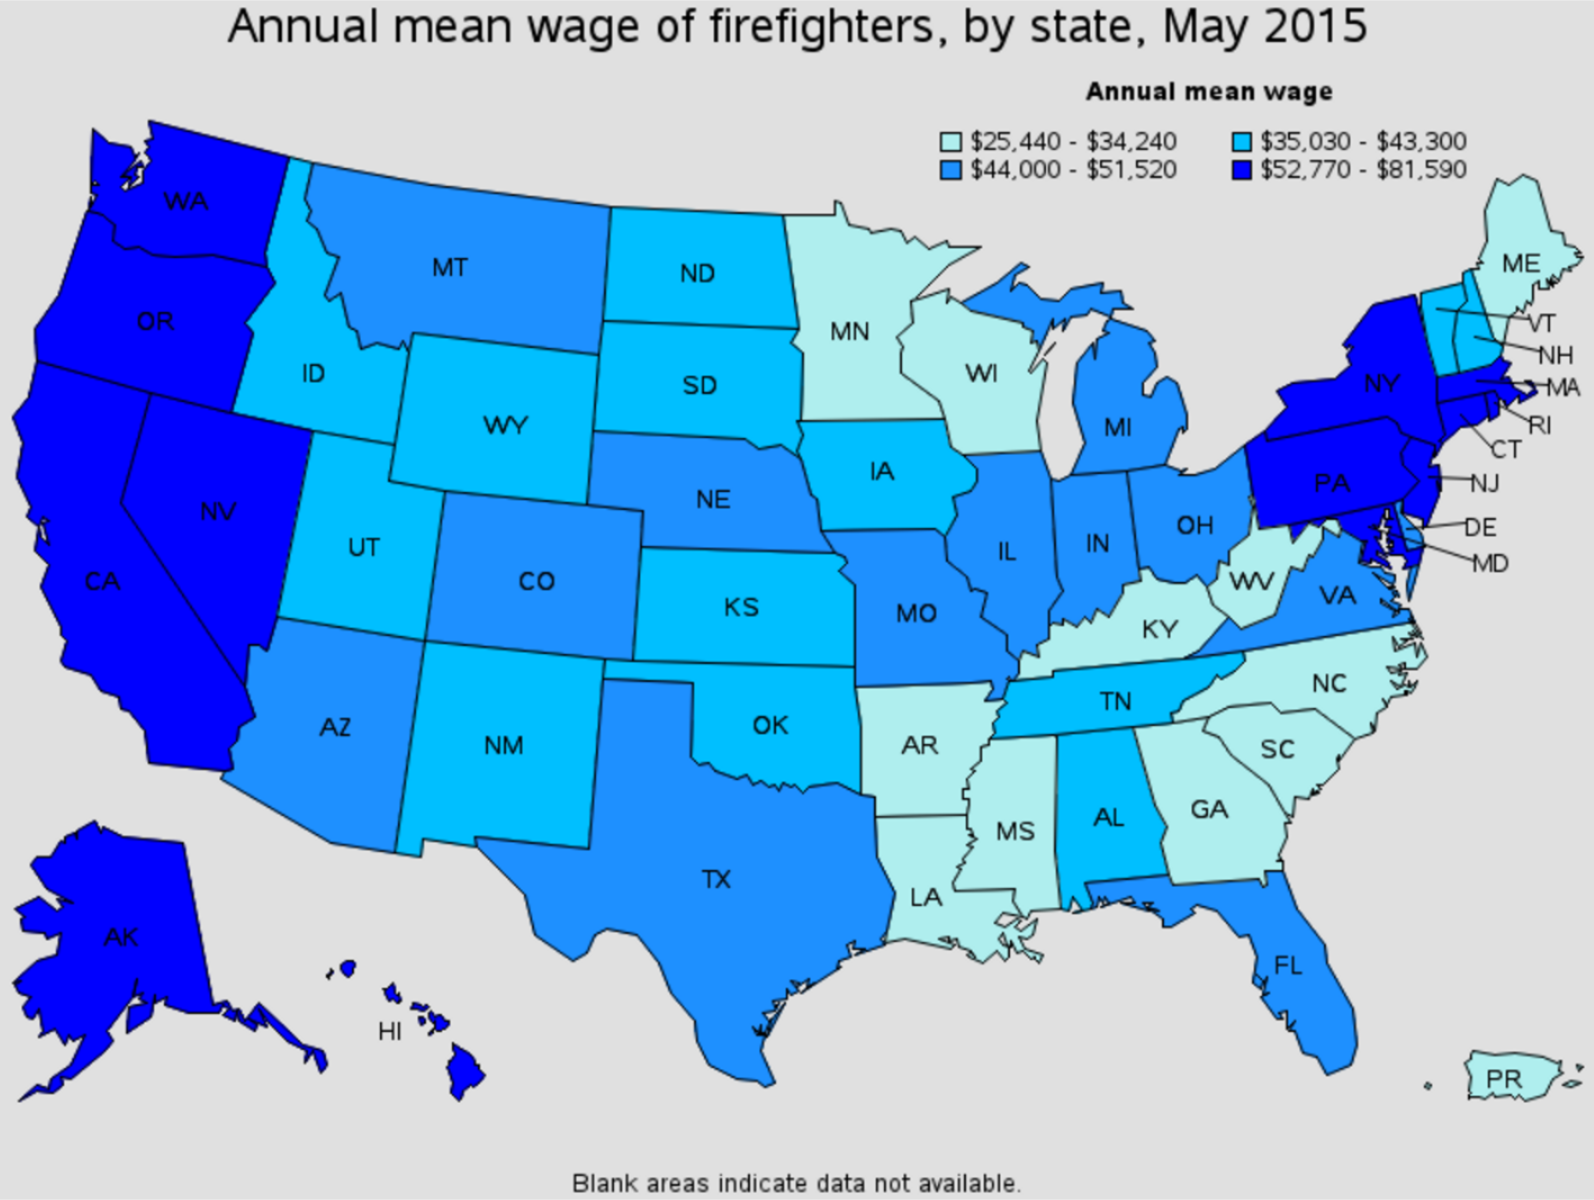 firefighter average salary by state Peoria Arizona